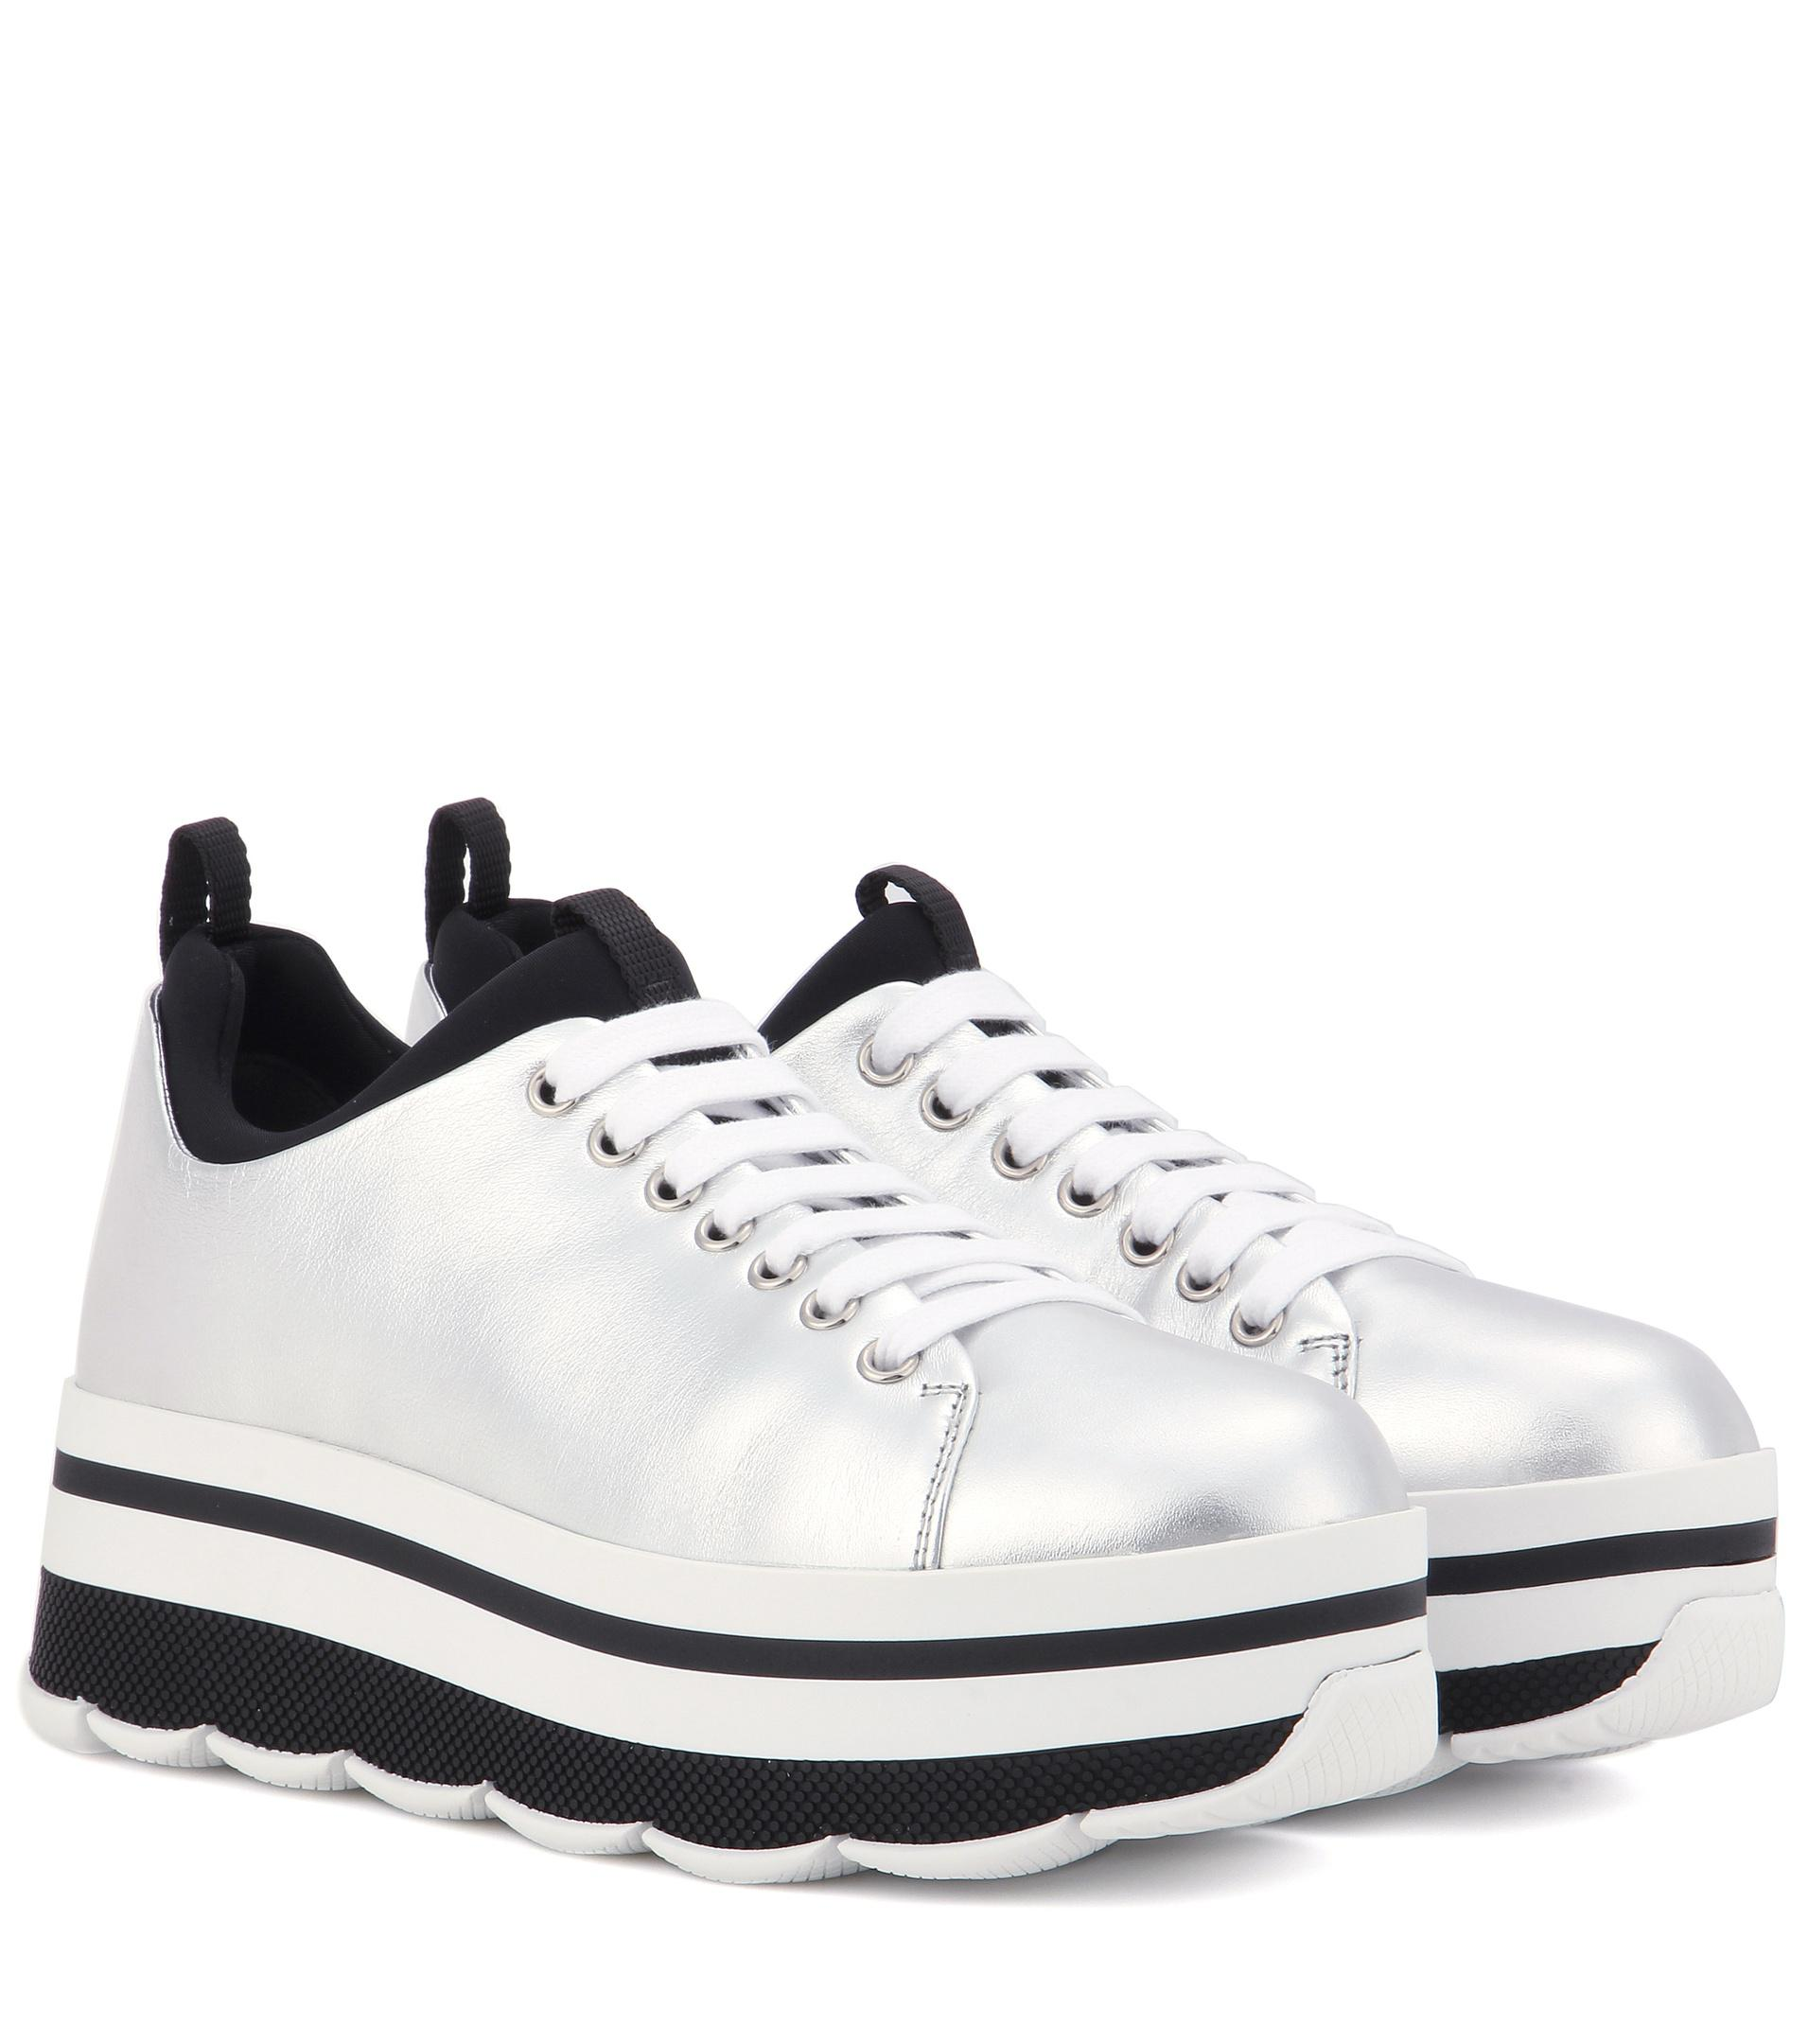 Metallic leather platform sneakers Prada nCd9mBk